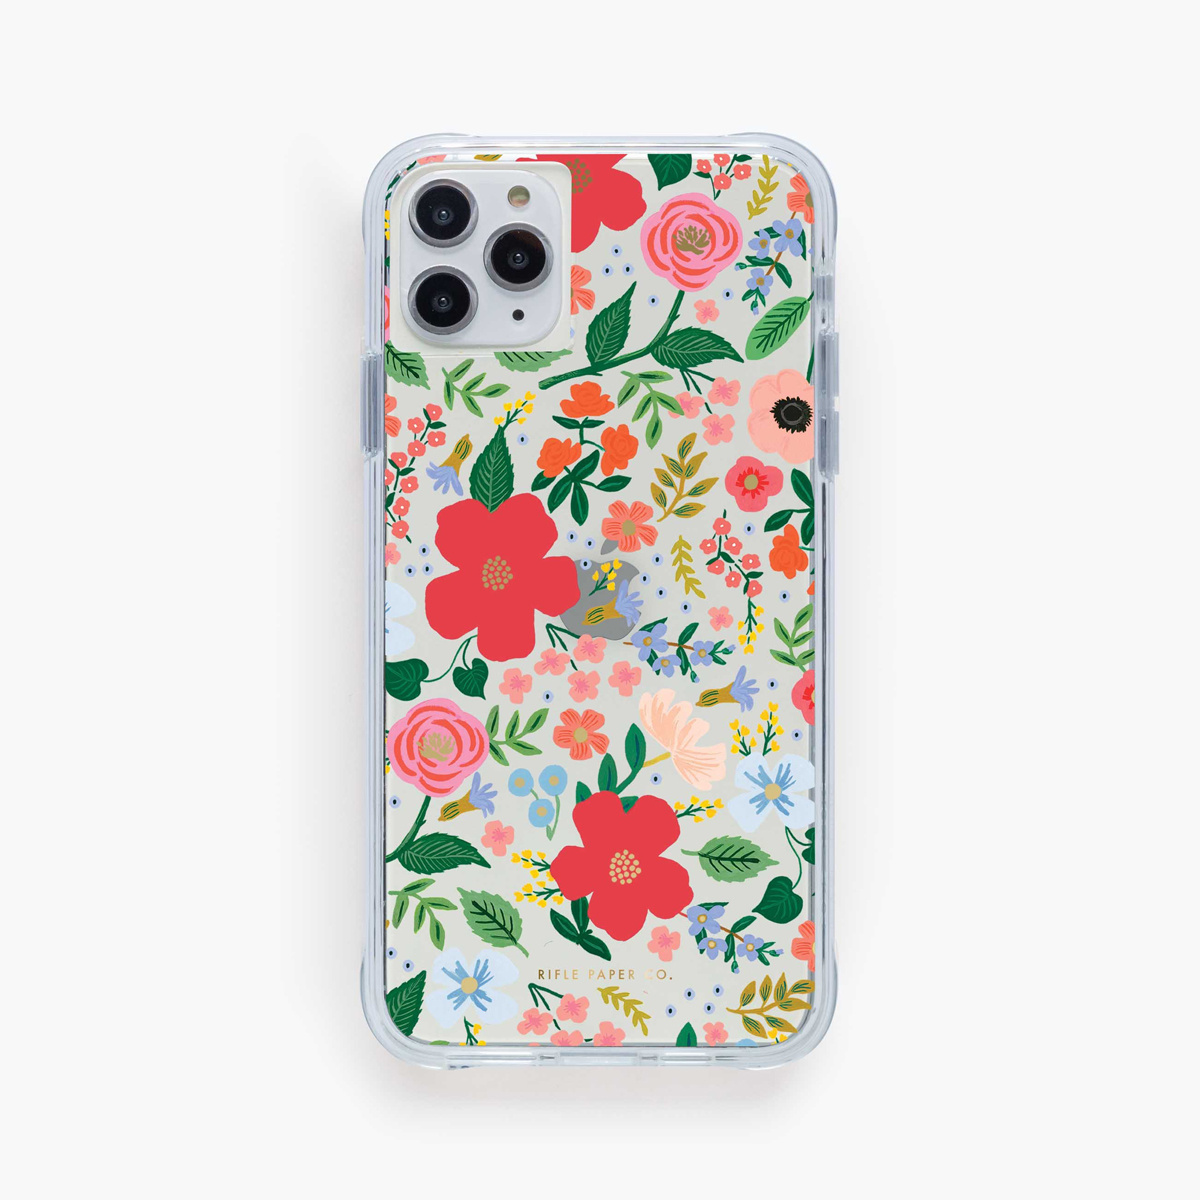 Rifle Paper Co. Wild Rose iPhone Case - various sizes